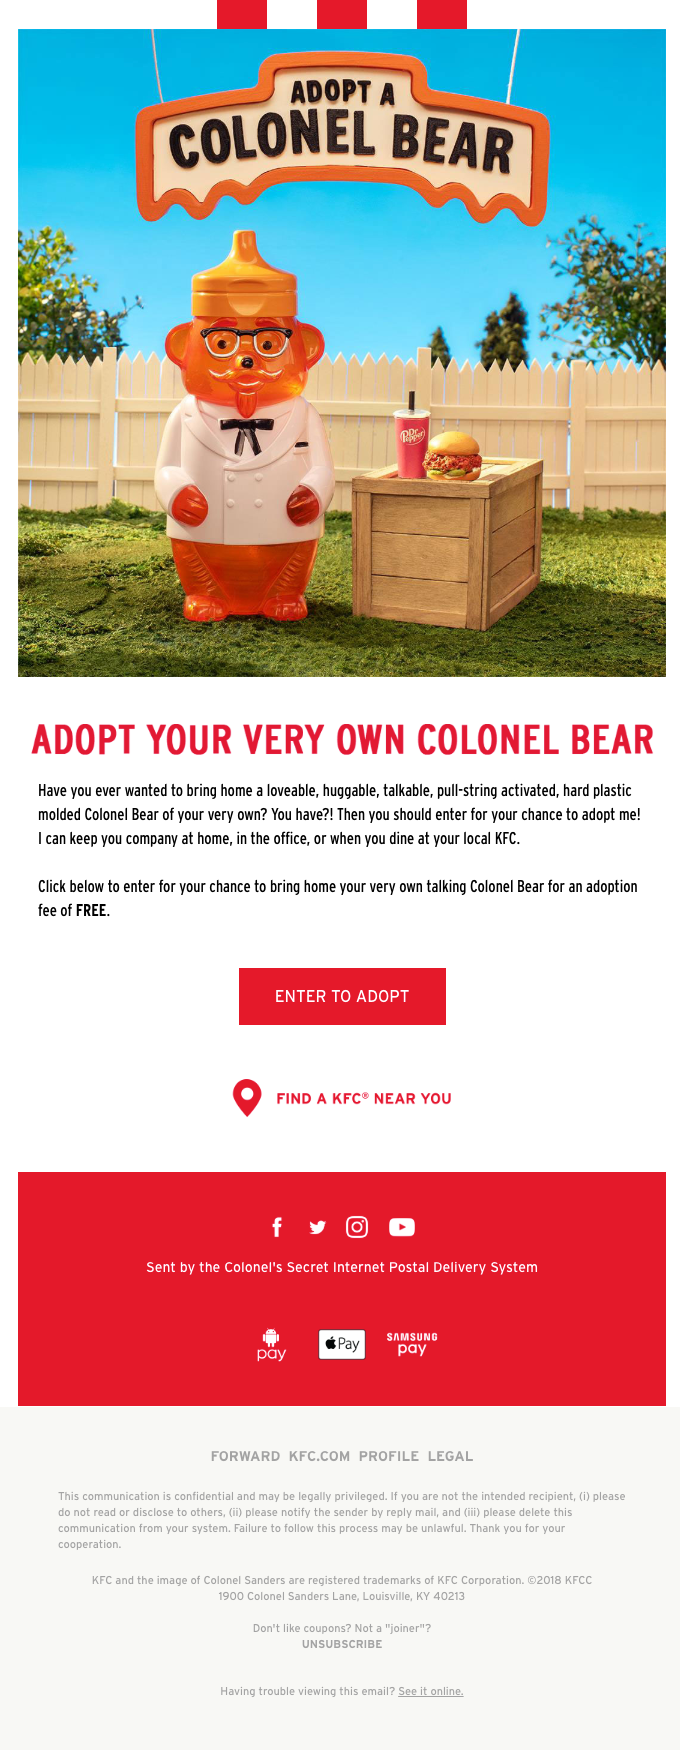 Last chance to get your free talking Colonel Bear figurine!